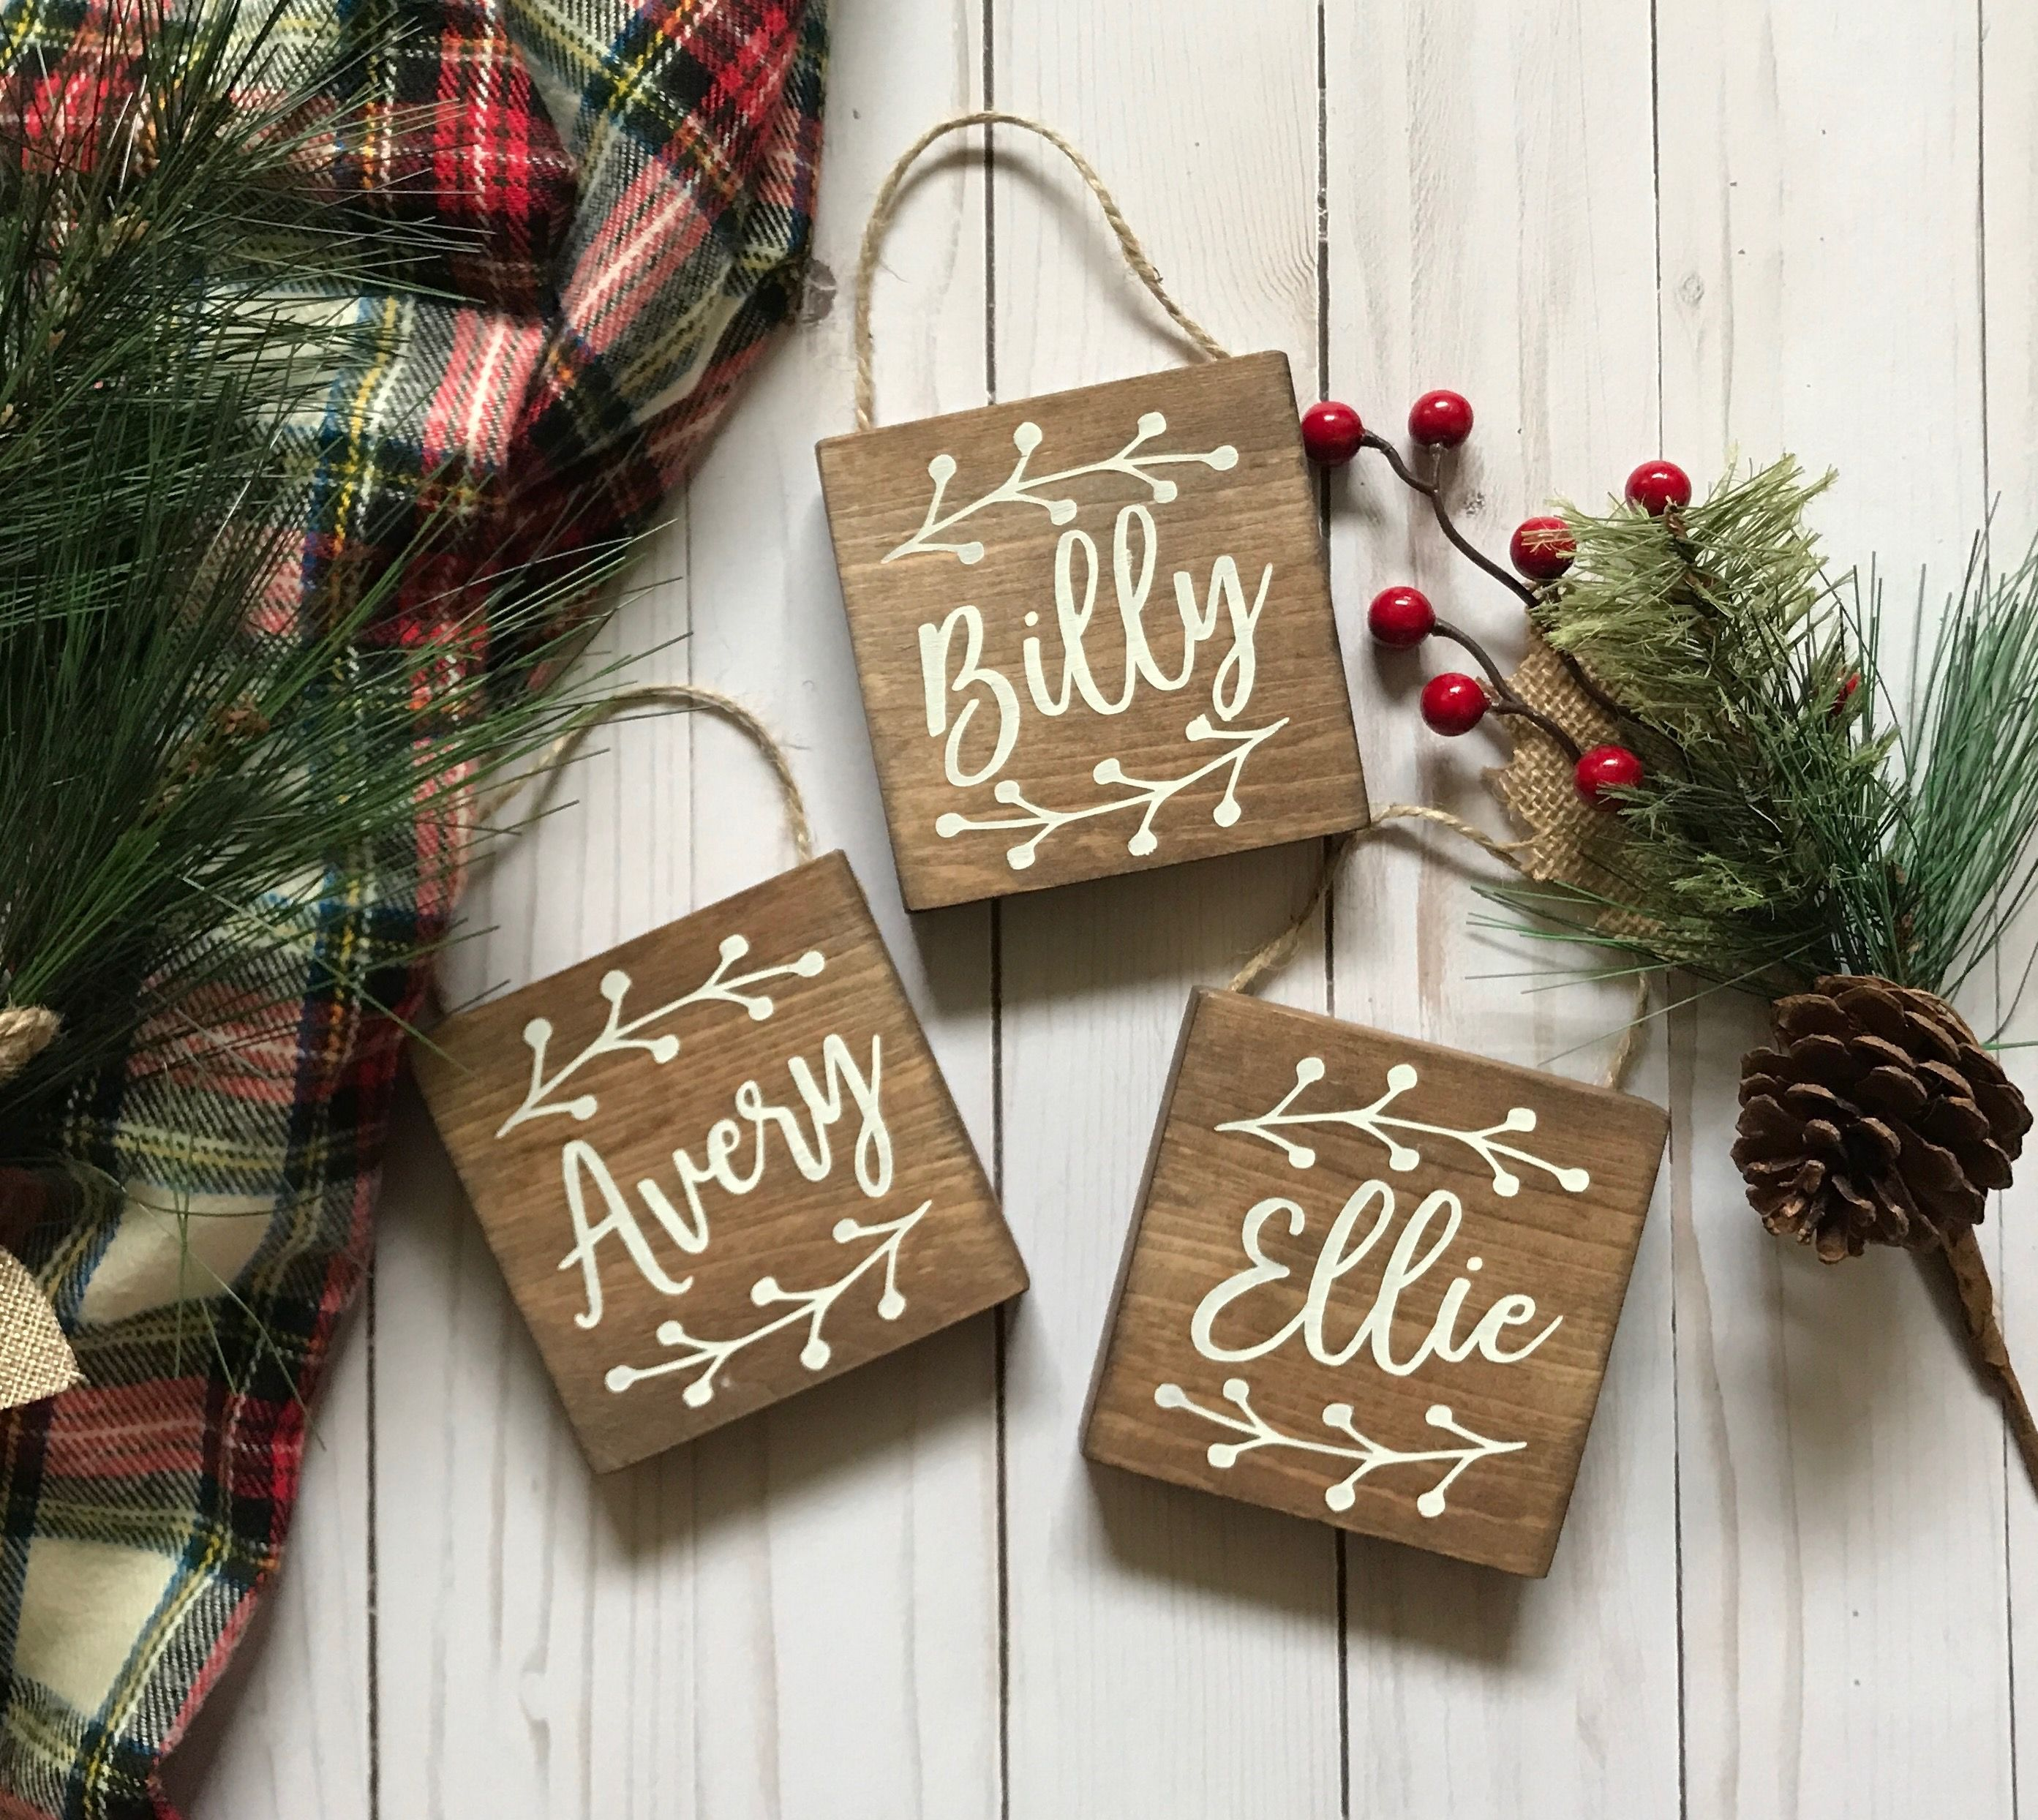 Personalized Christmas Ornaments Rustic Christmas Tree Ornaments Wooden Christmas Orn Christmas Ornaments Christmas Tree Ornaments Wooden Christmas Ornaments